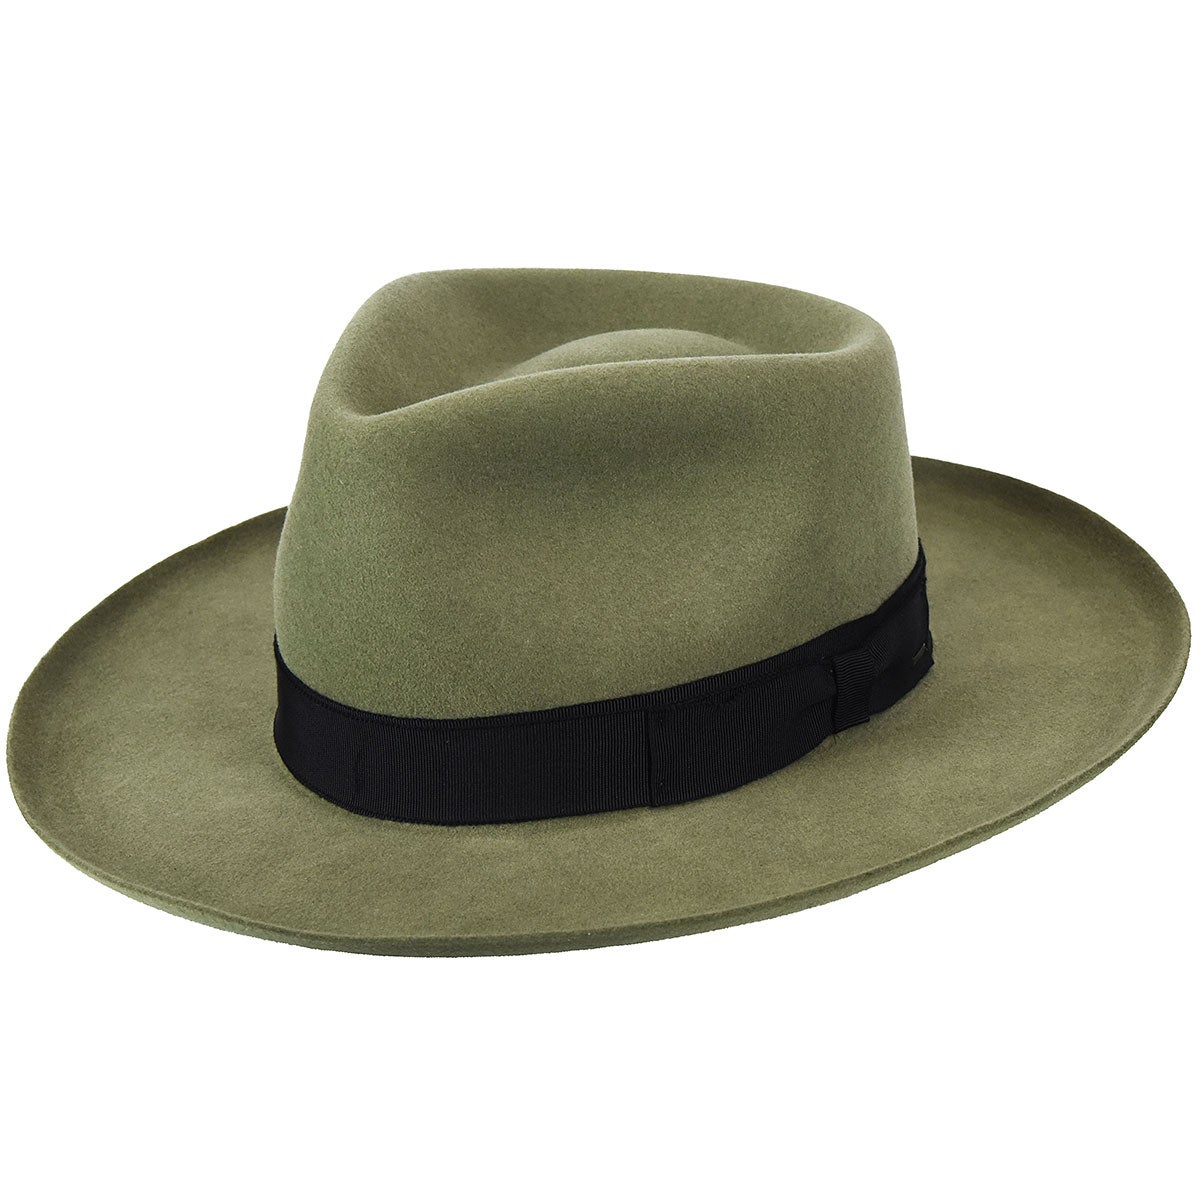 b4c16f4ae 1940s Men's Hats: Vintage Styles, History, Buying Guide